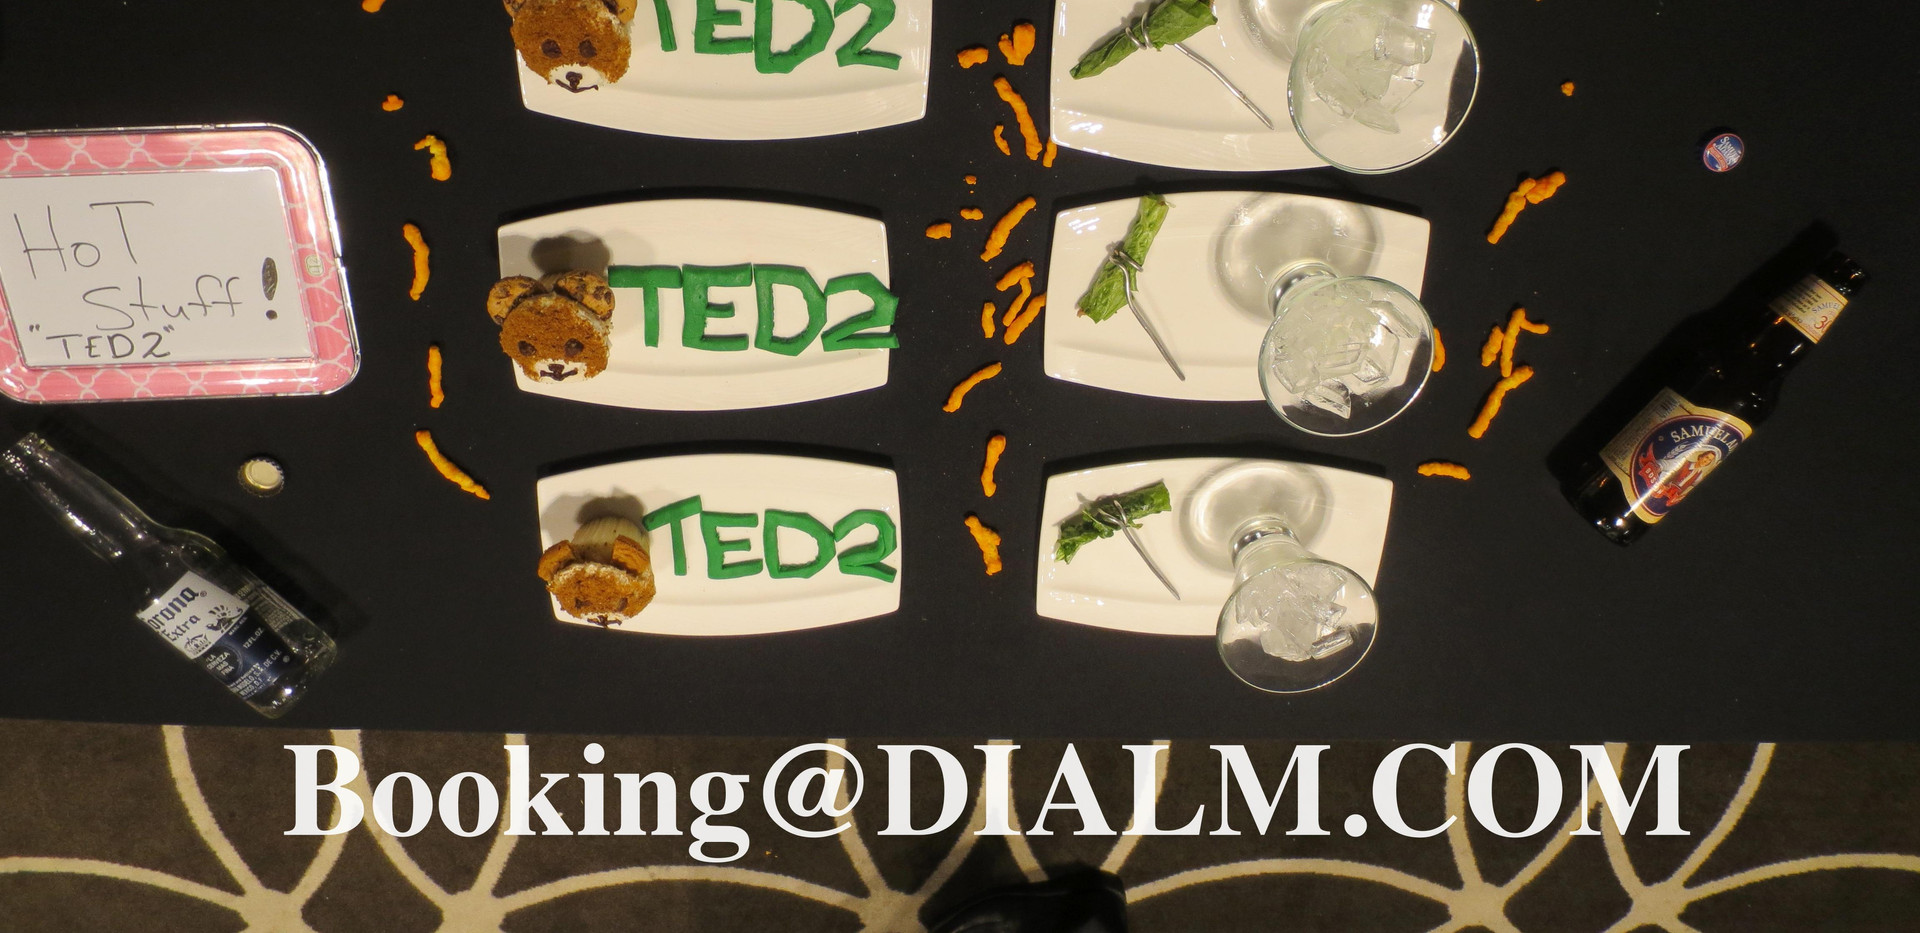 Ted 2 presentation 3 Culinary Challenge